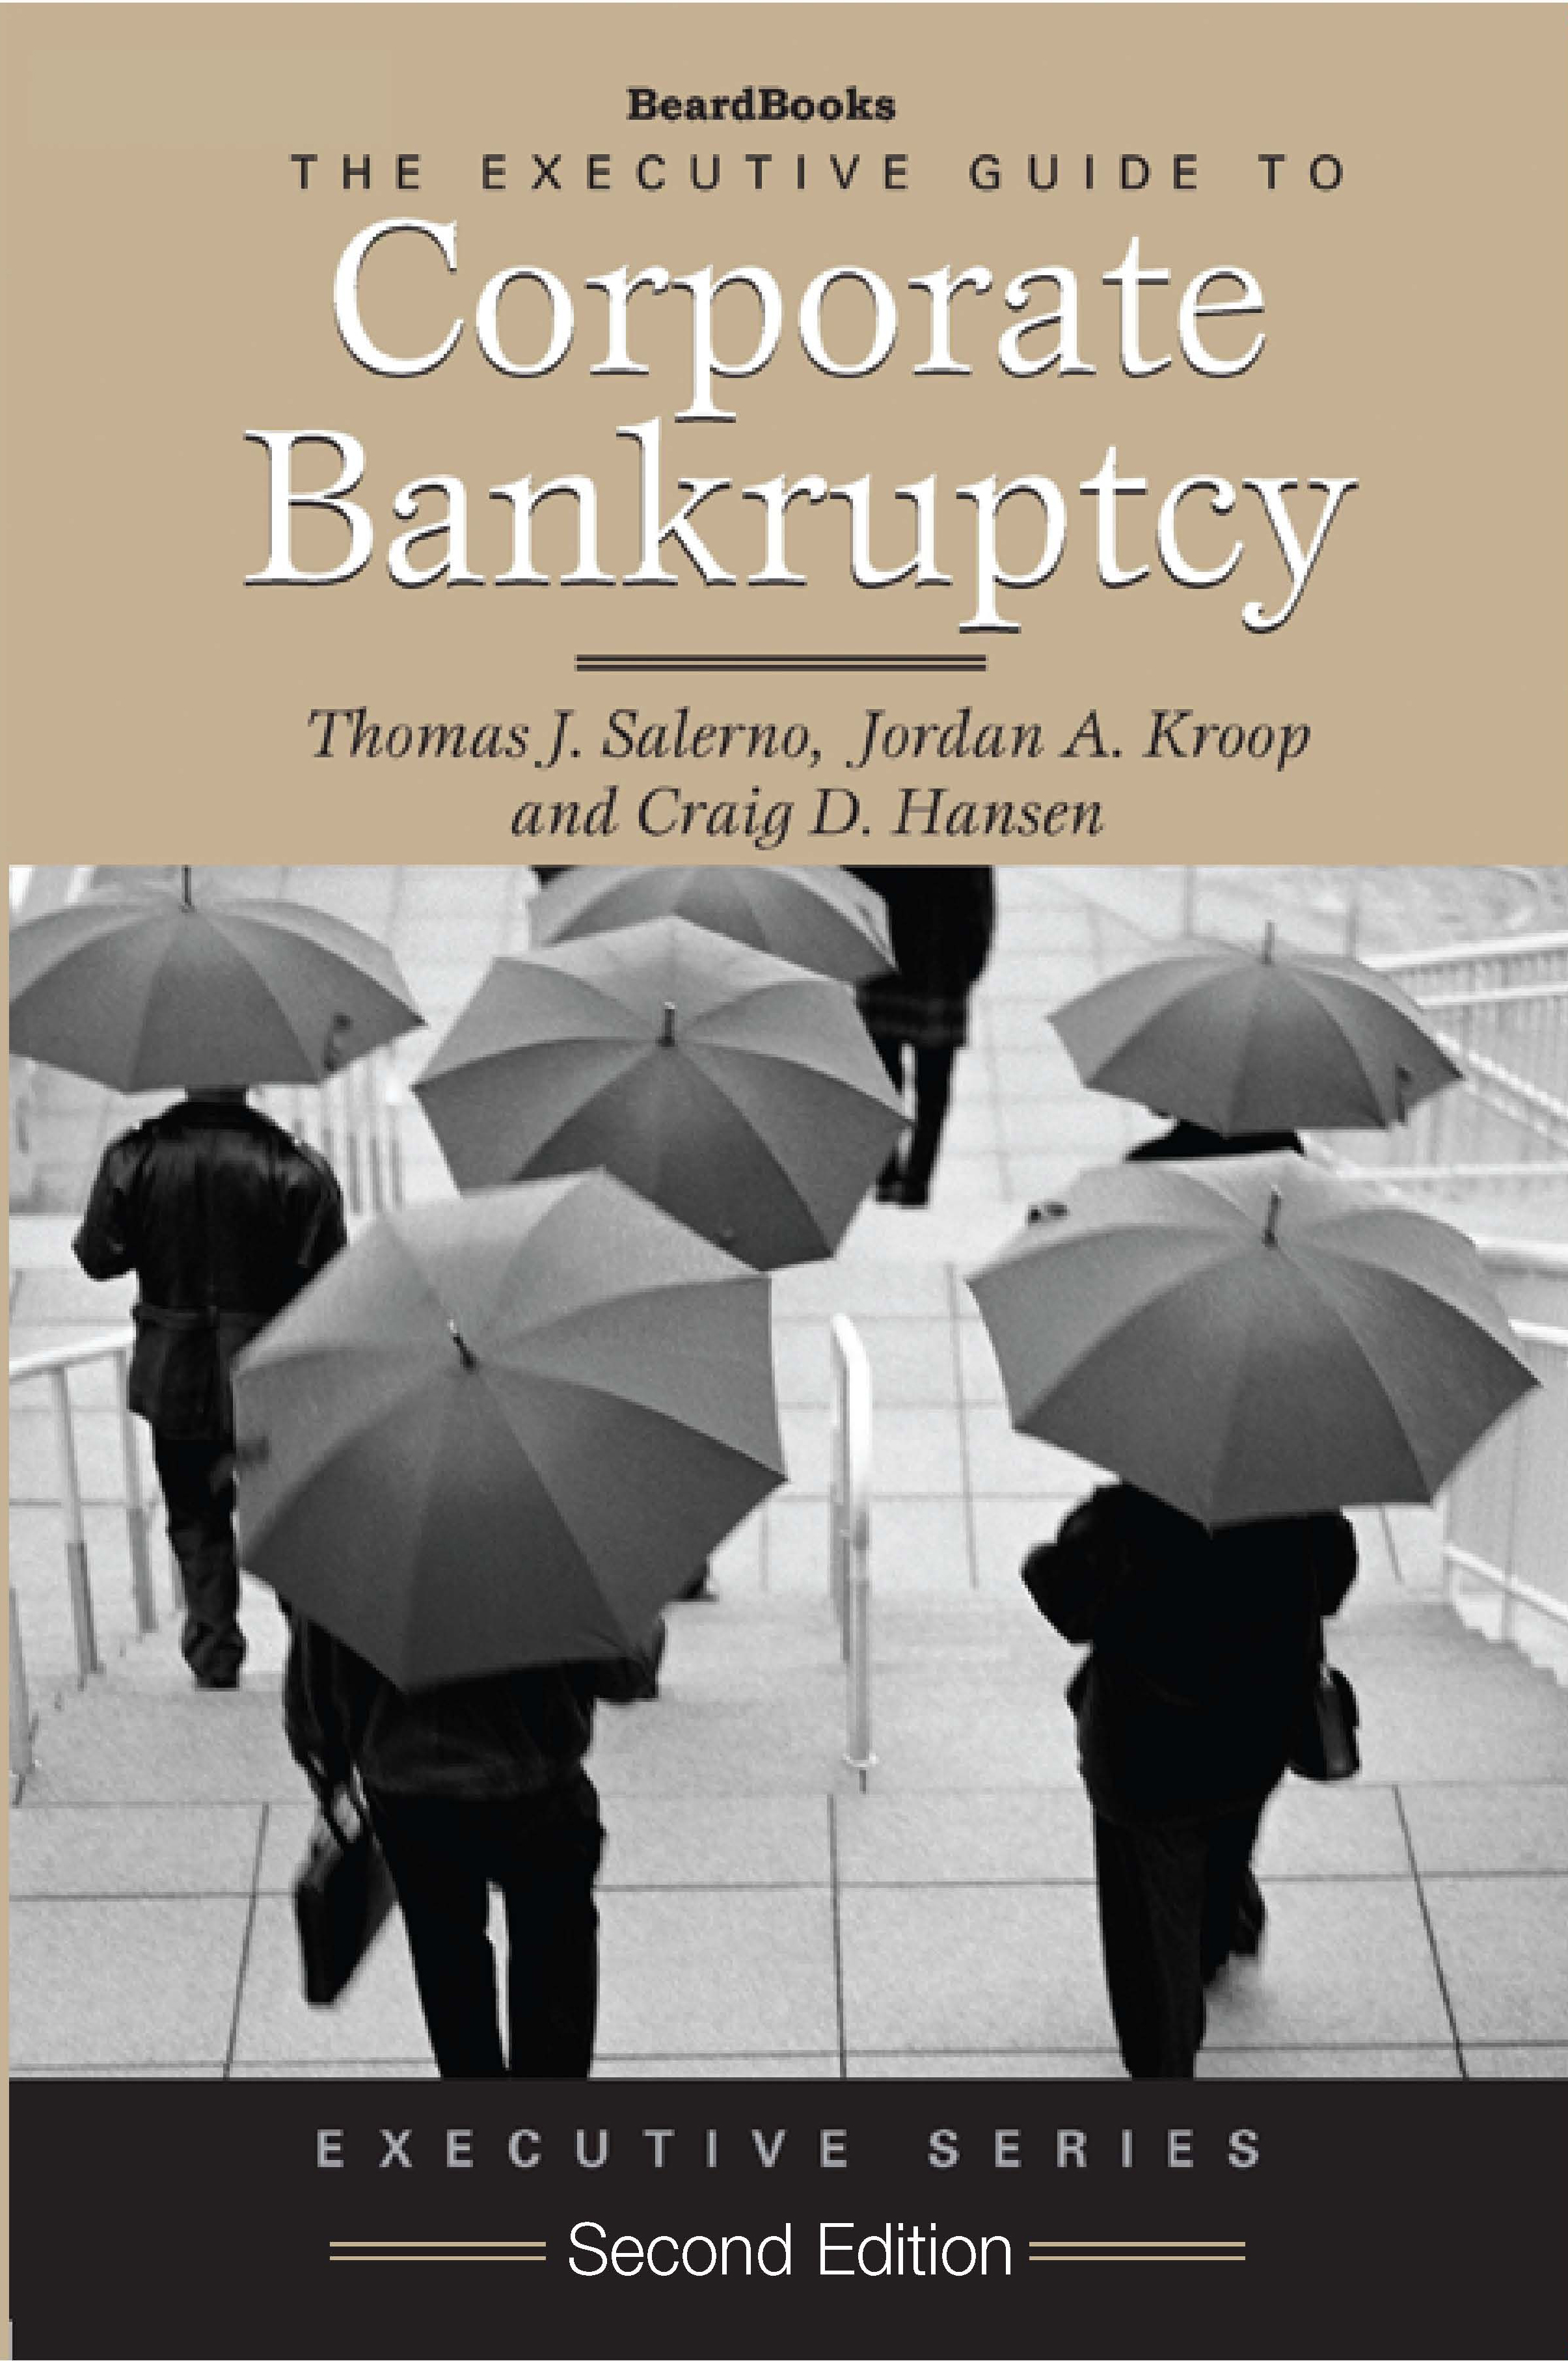 The Executive Guide to Corporate Bankruptcy - Second Edition